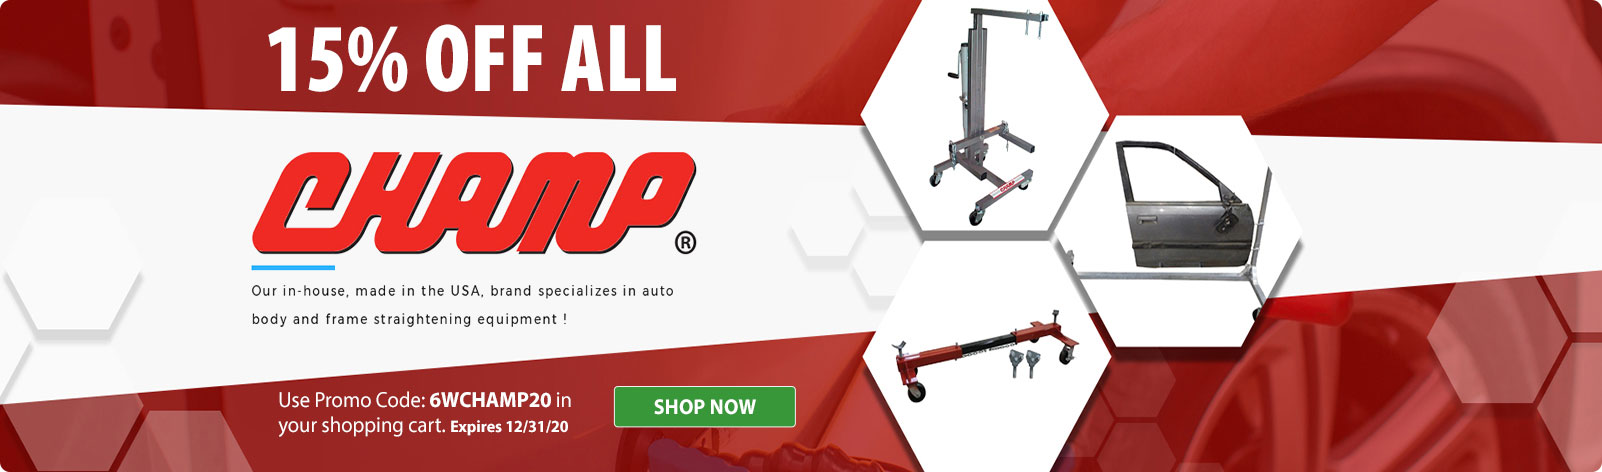 Champ Automotive Tools and Equipment